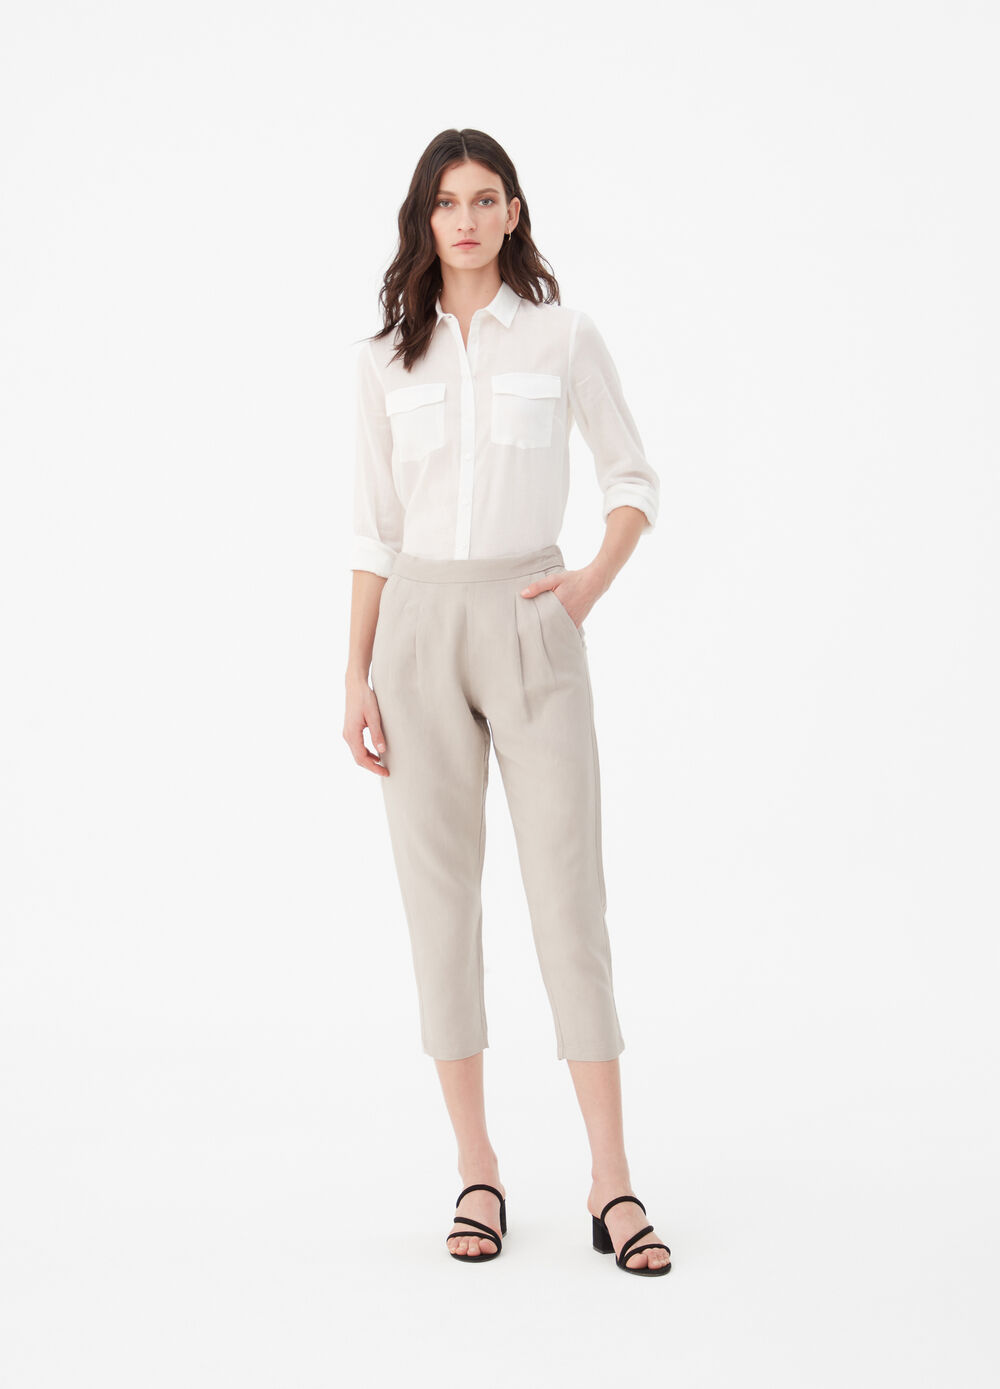 Carrot fit trousers with welt pockets.